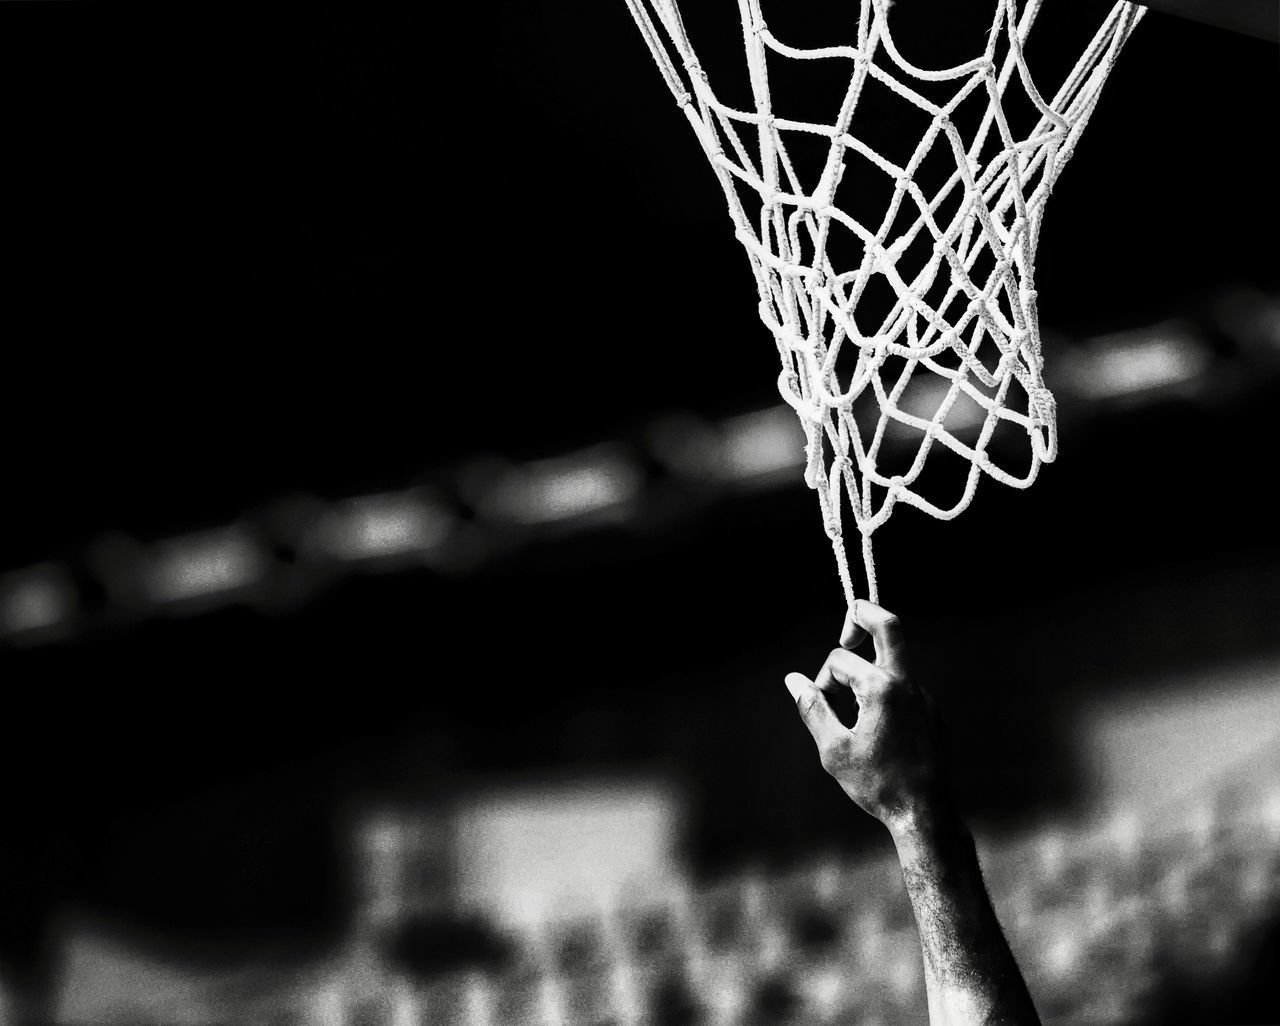 CLOSE-UP OF HUMAN HAND AGAINST BASKETBALL HOOP